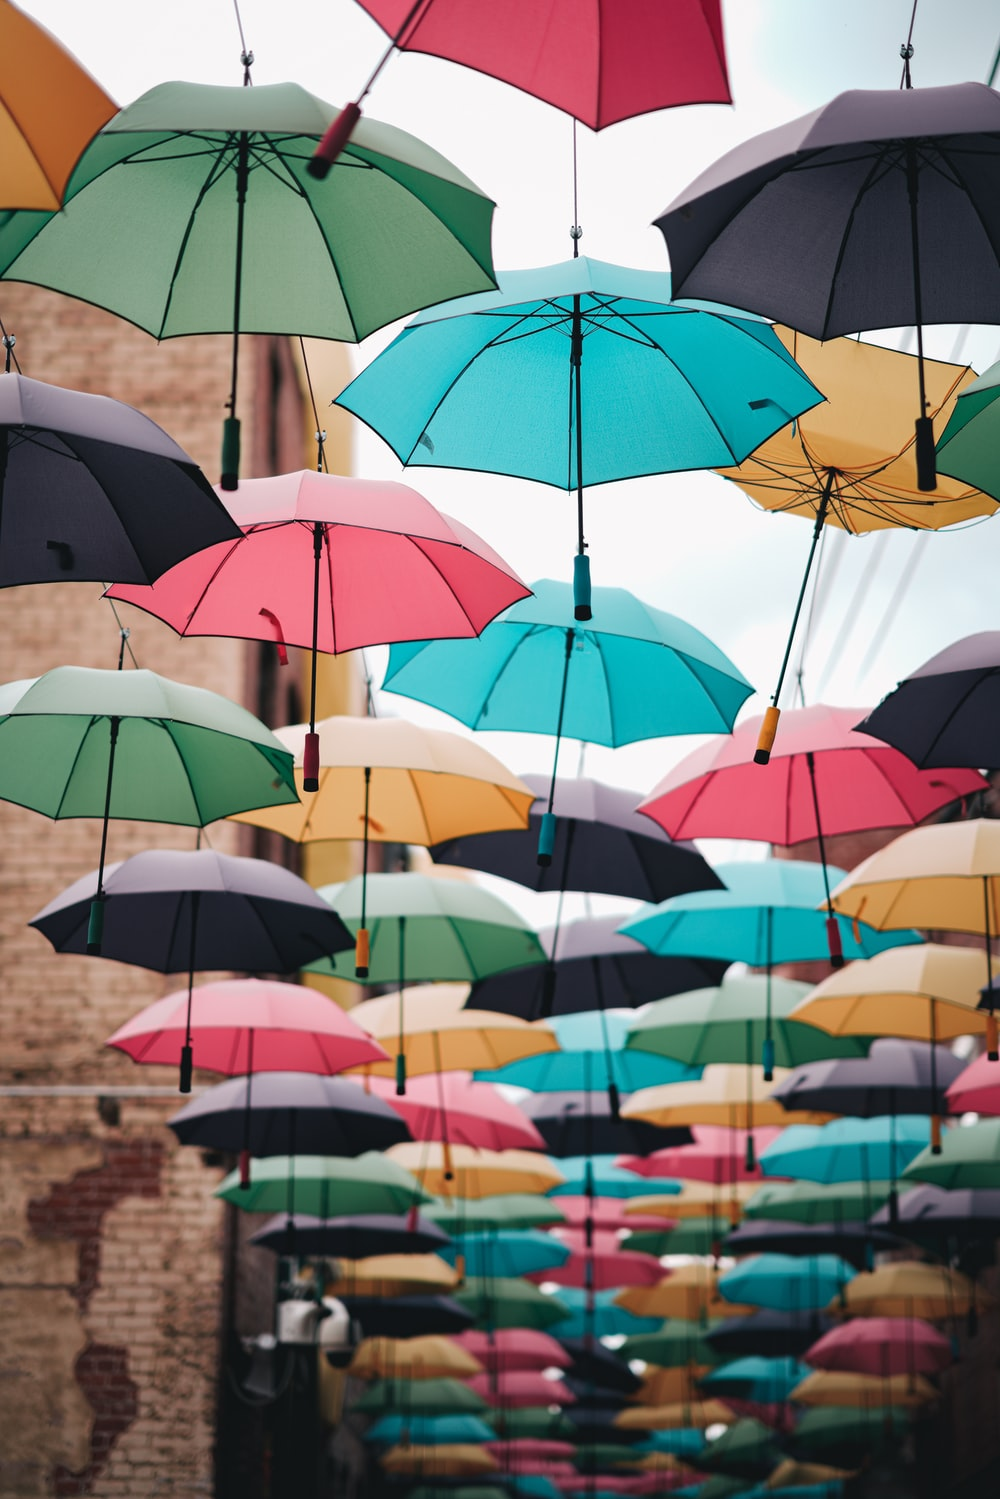 assorted umbrella hanging on wire during daytime